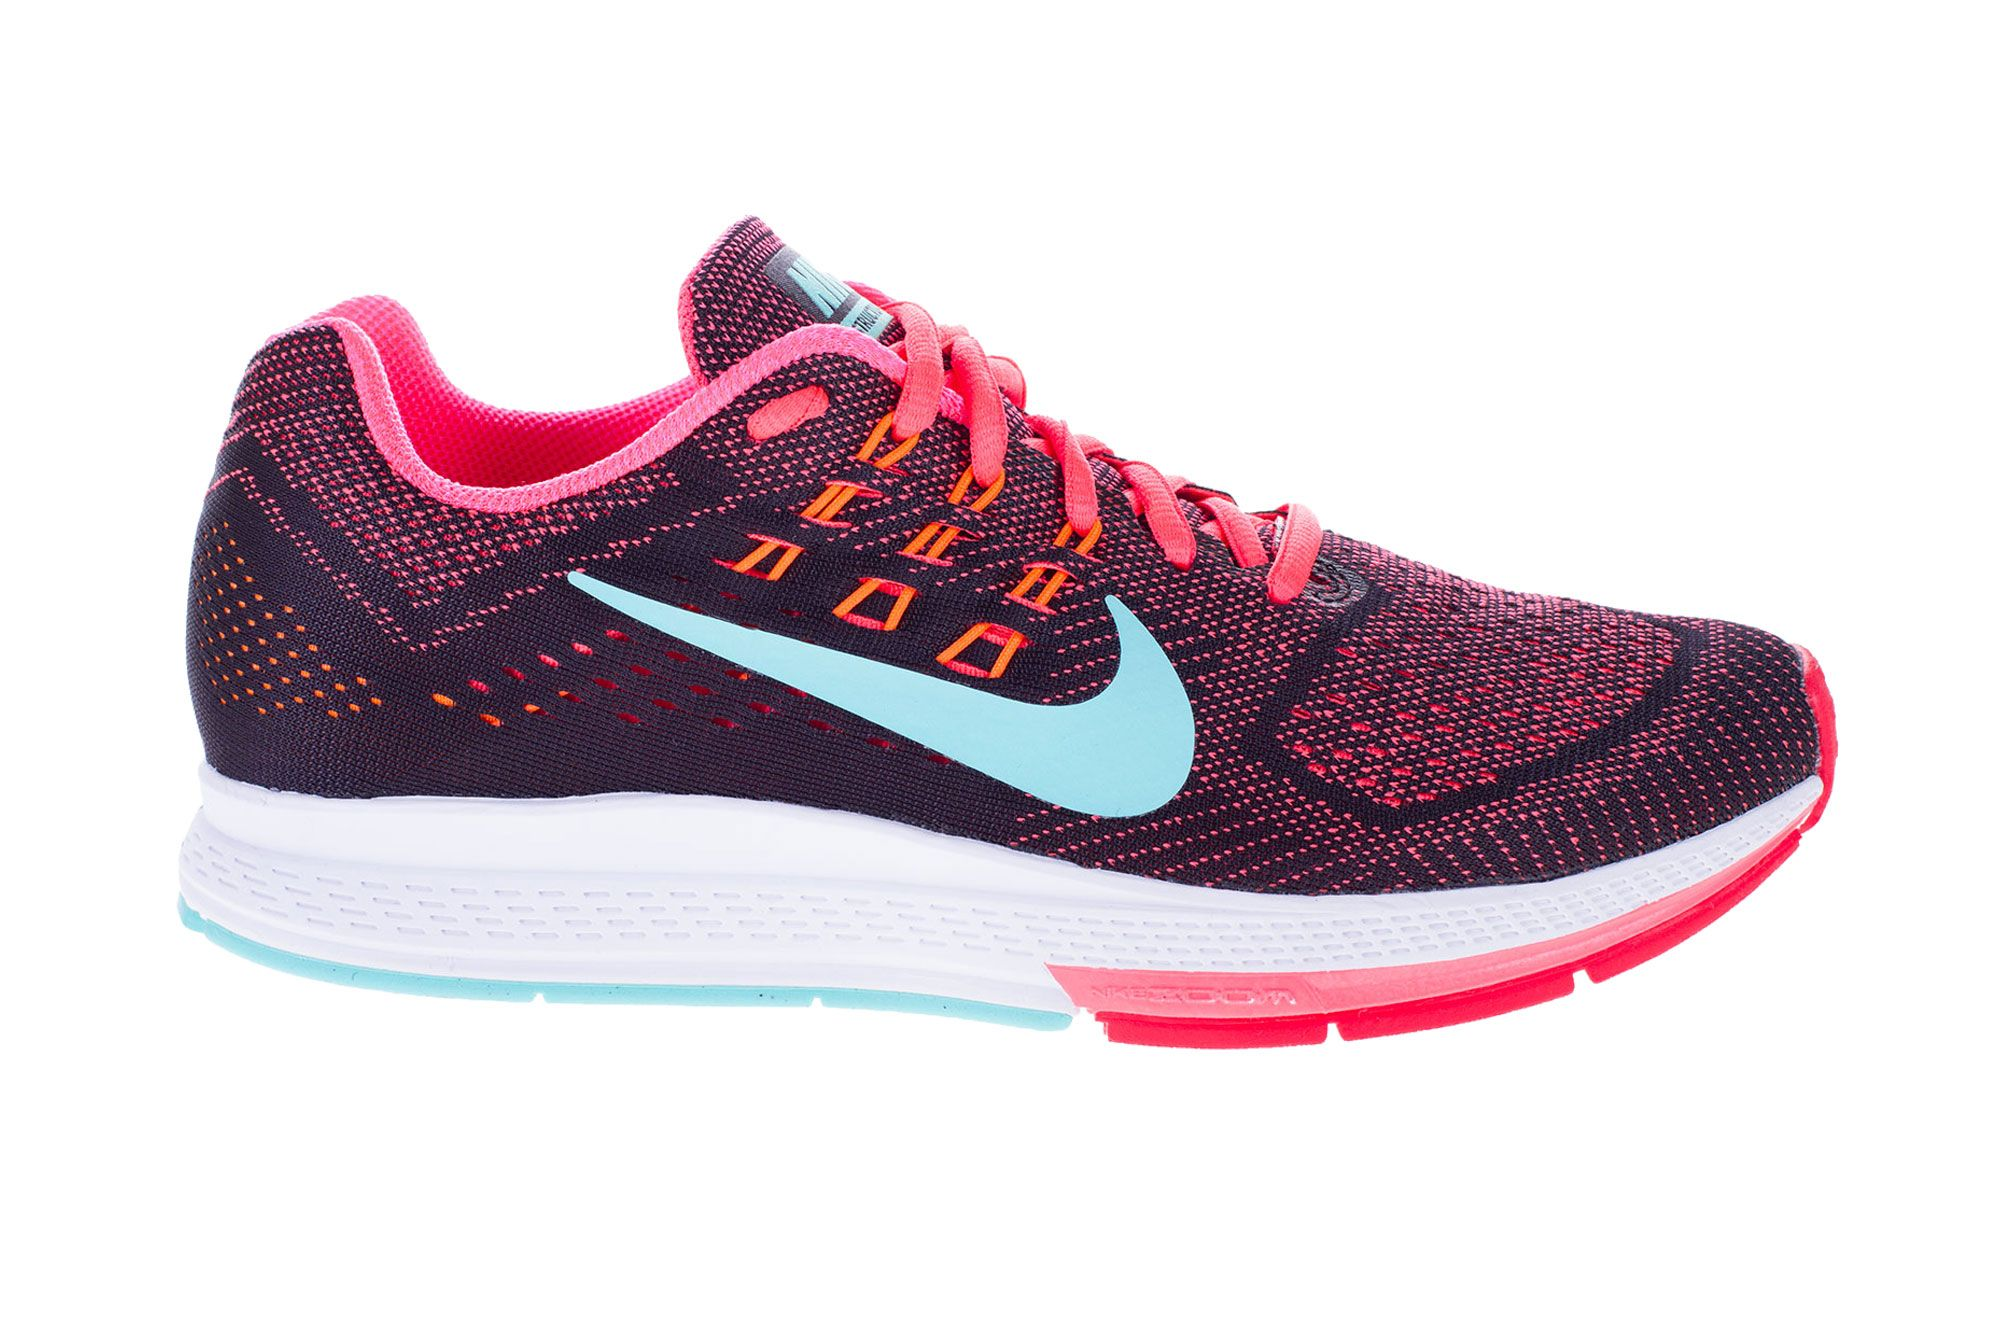 new arrivals 02011 41fef Nike Zoom Structure 18 dames